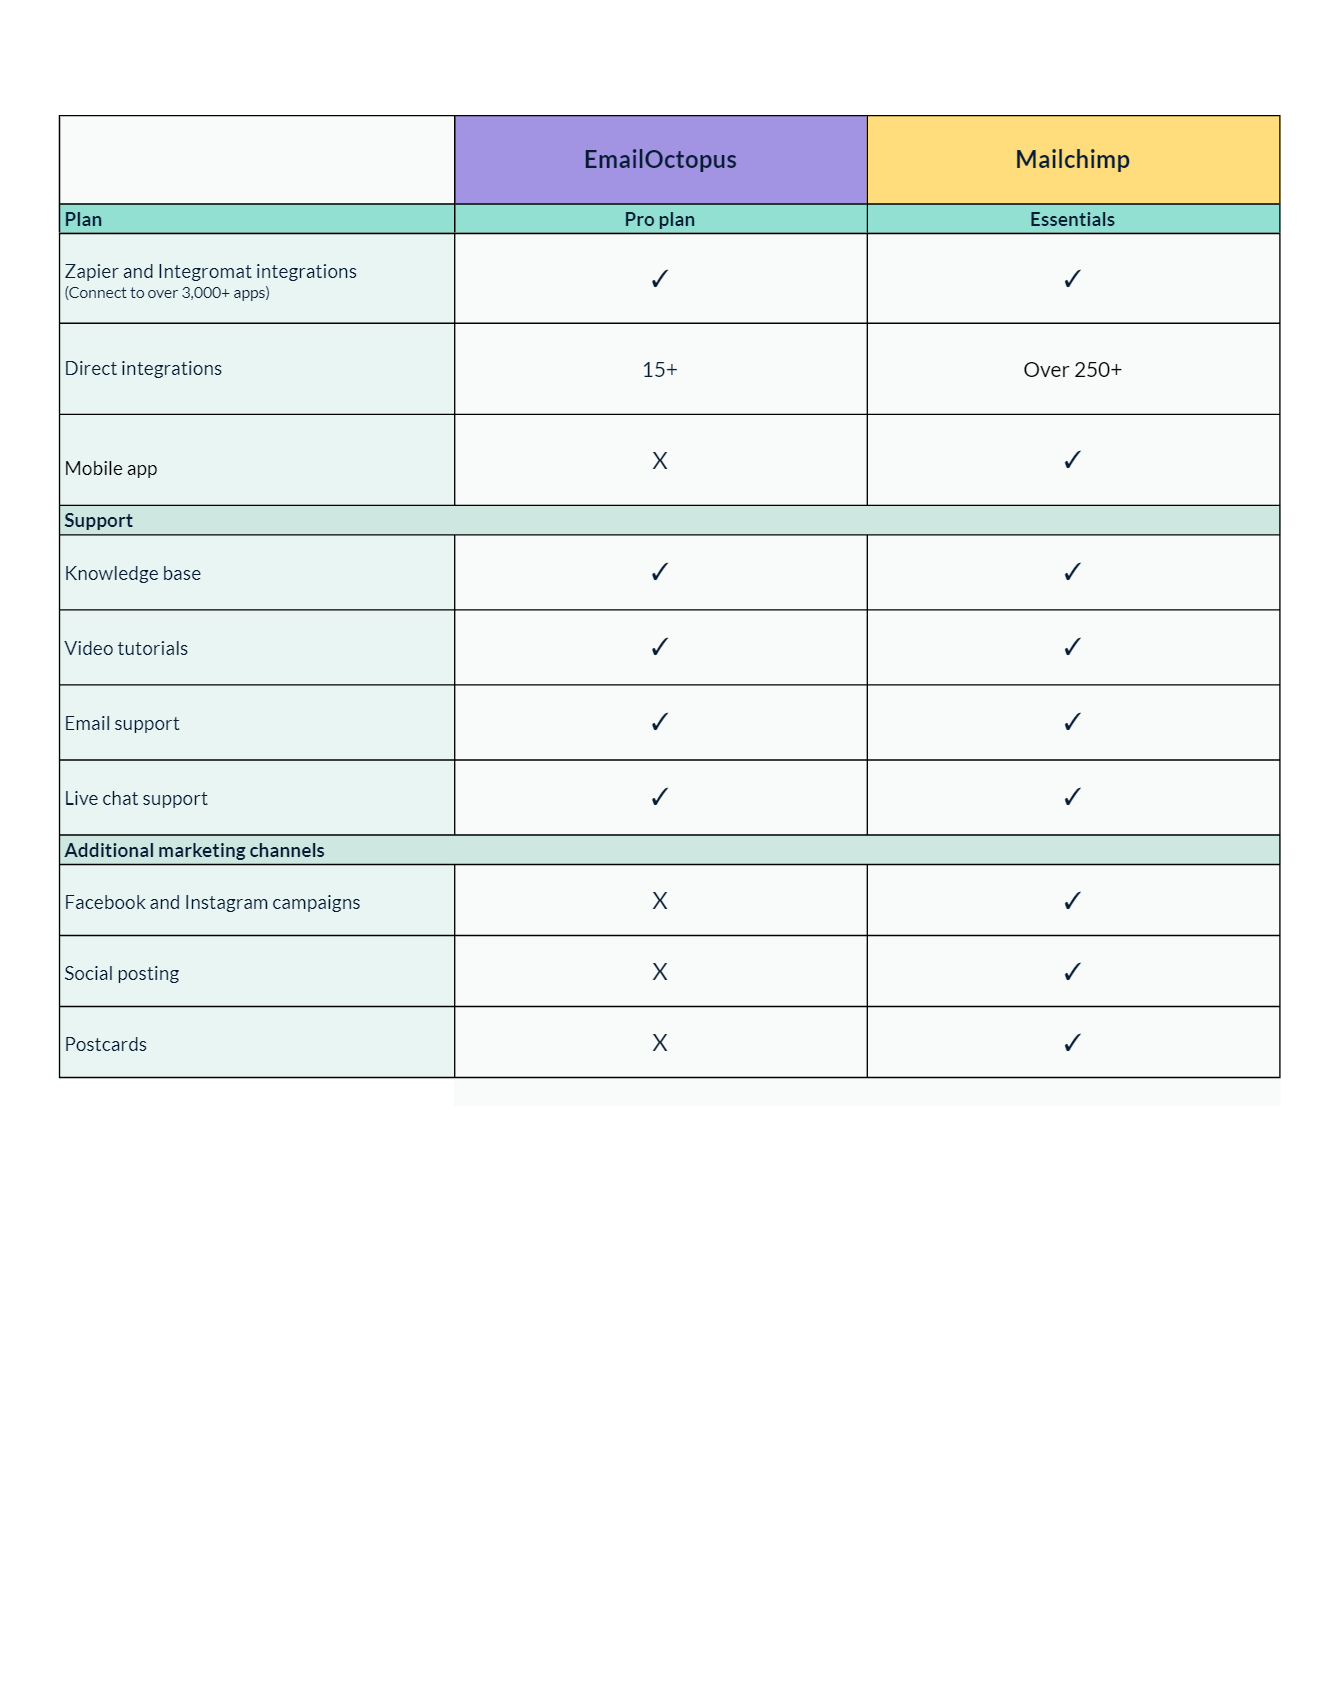 Email octopus vs Mailchimp in detail reviews